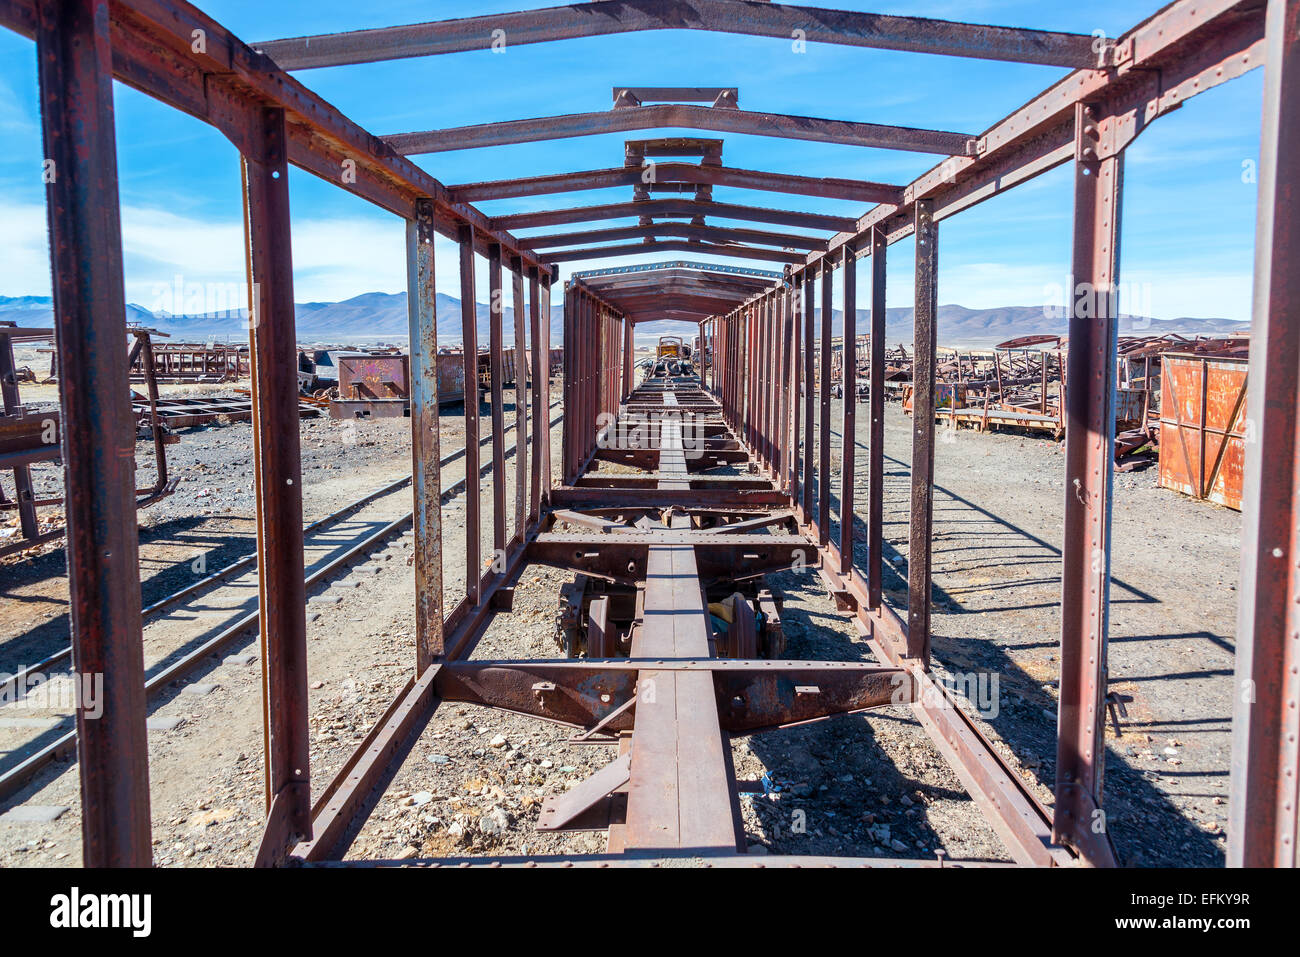 Remains of a train carriage at the Train Cemetery in Uyuni, Bolivia Stock Photo